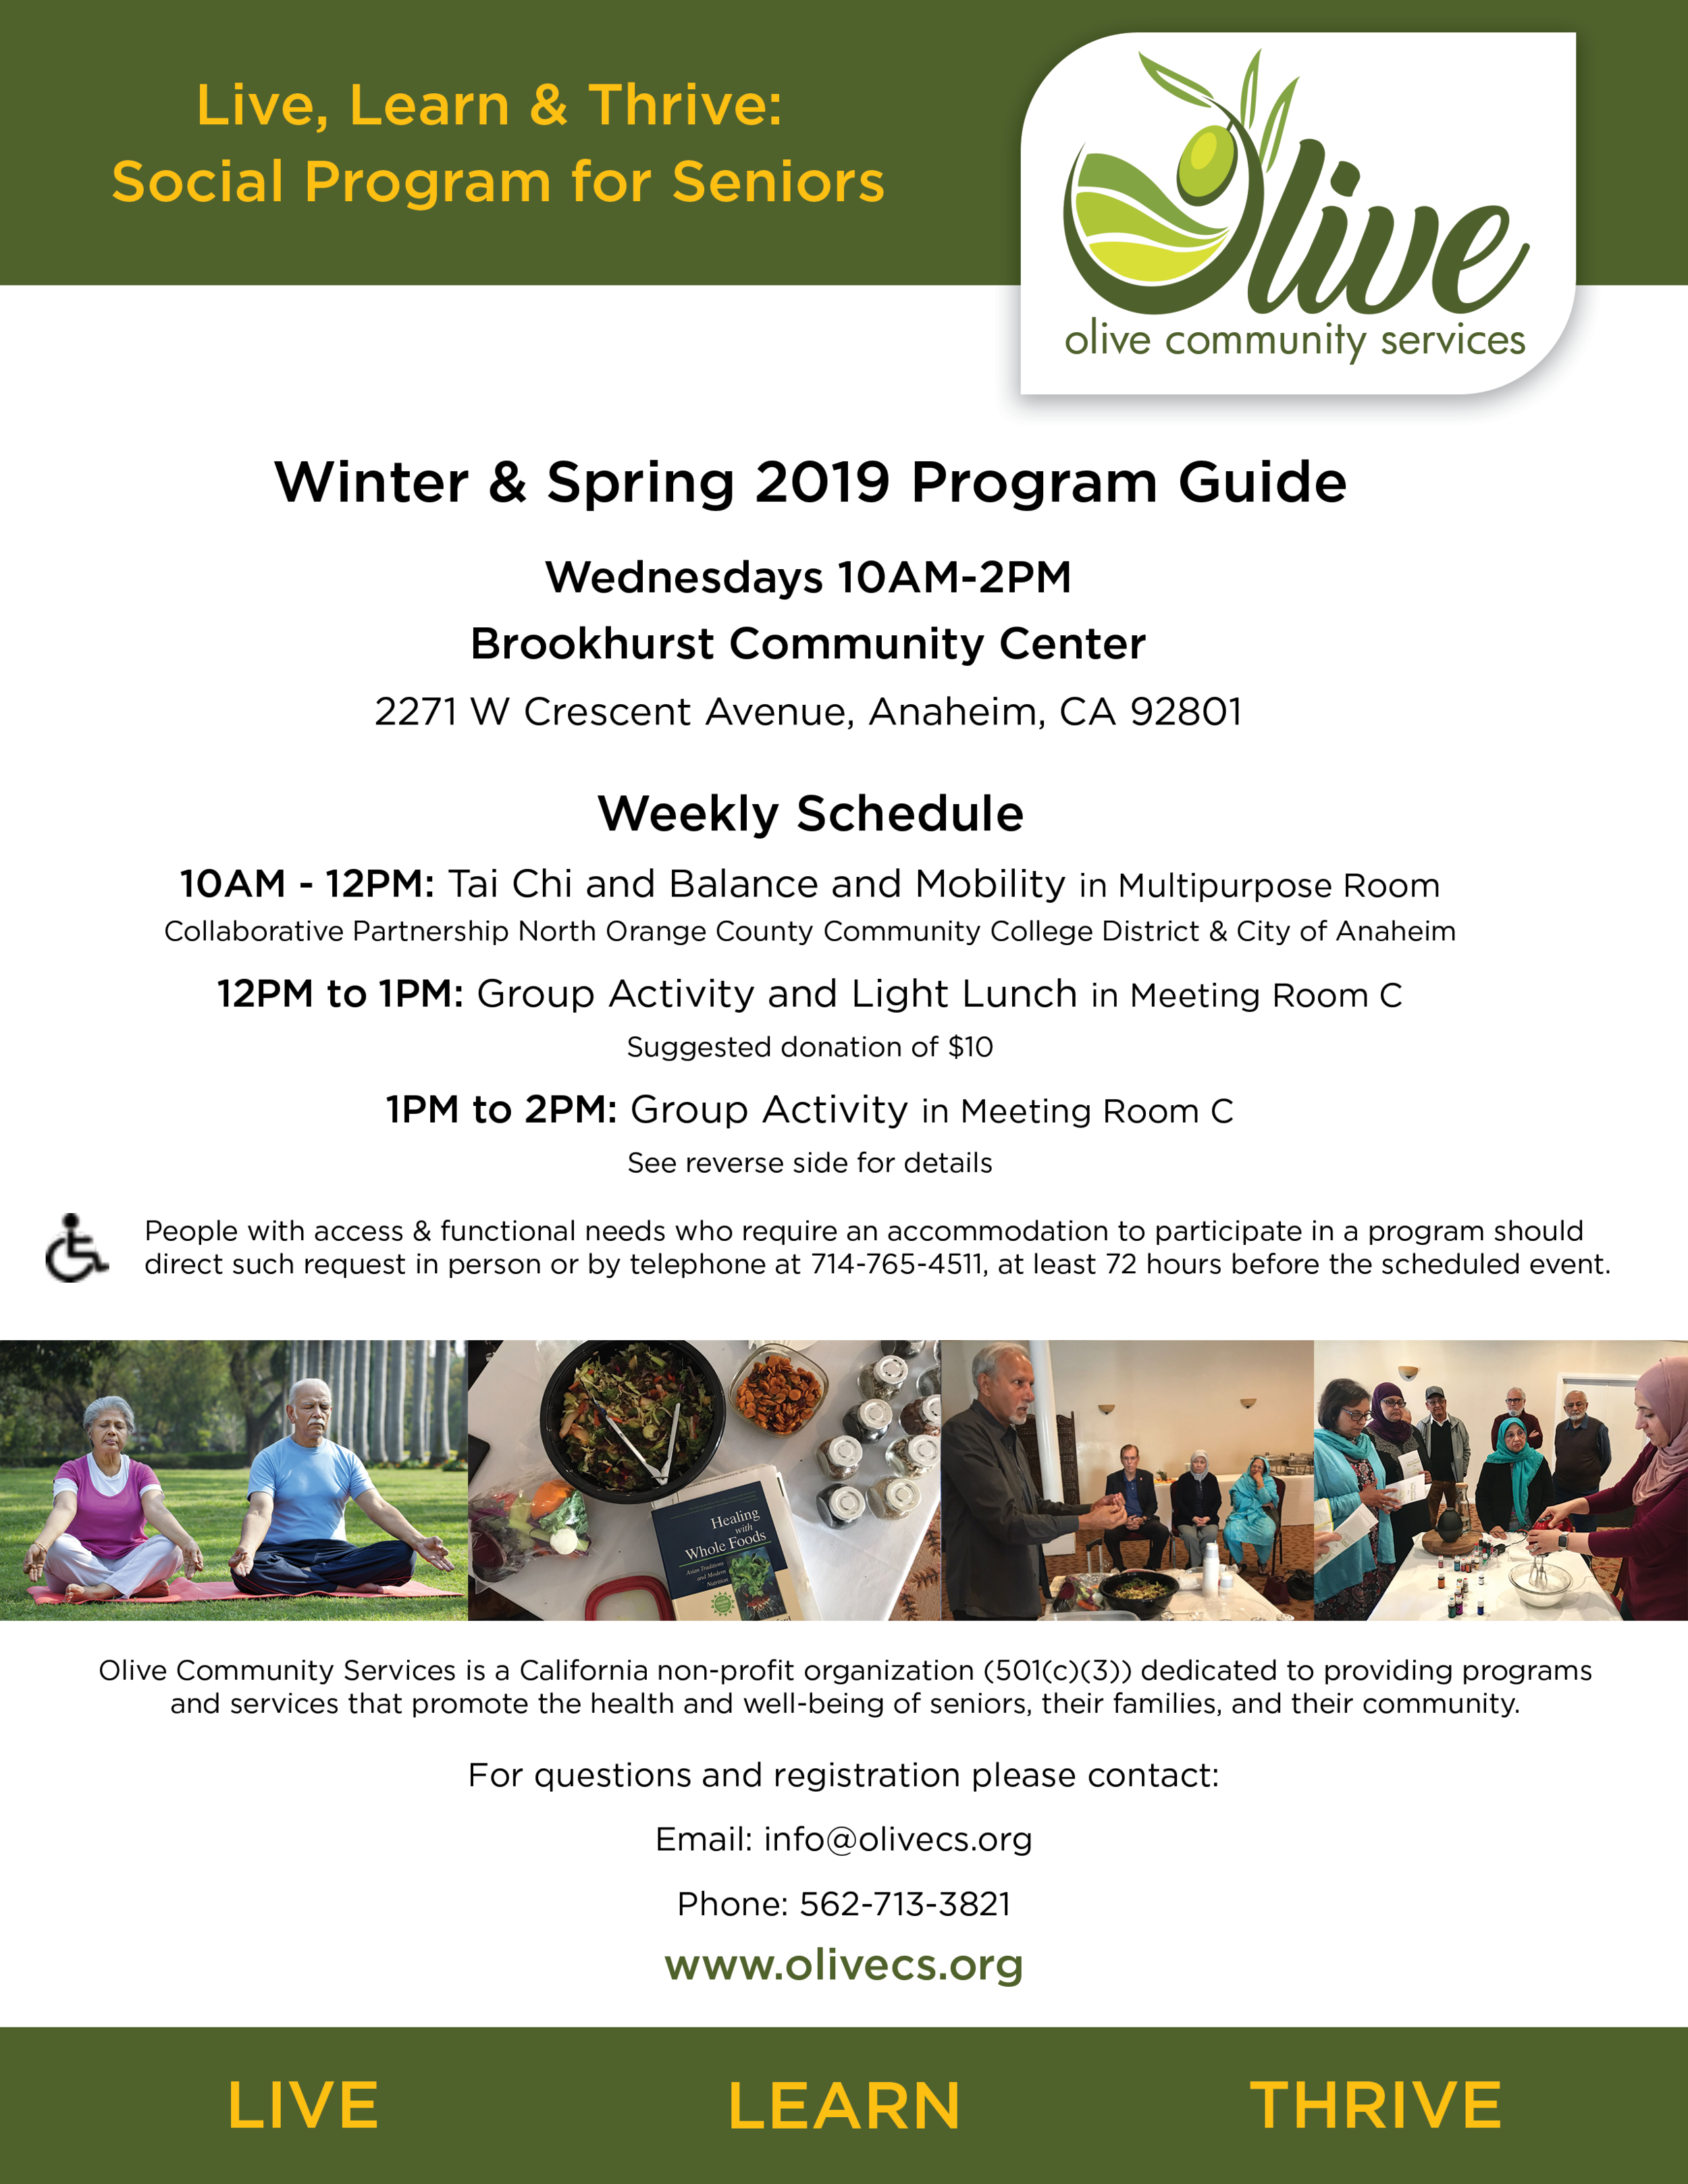 LLT Flyer_Winter & Spring 2019.png